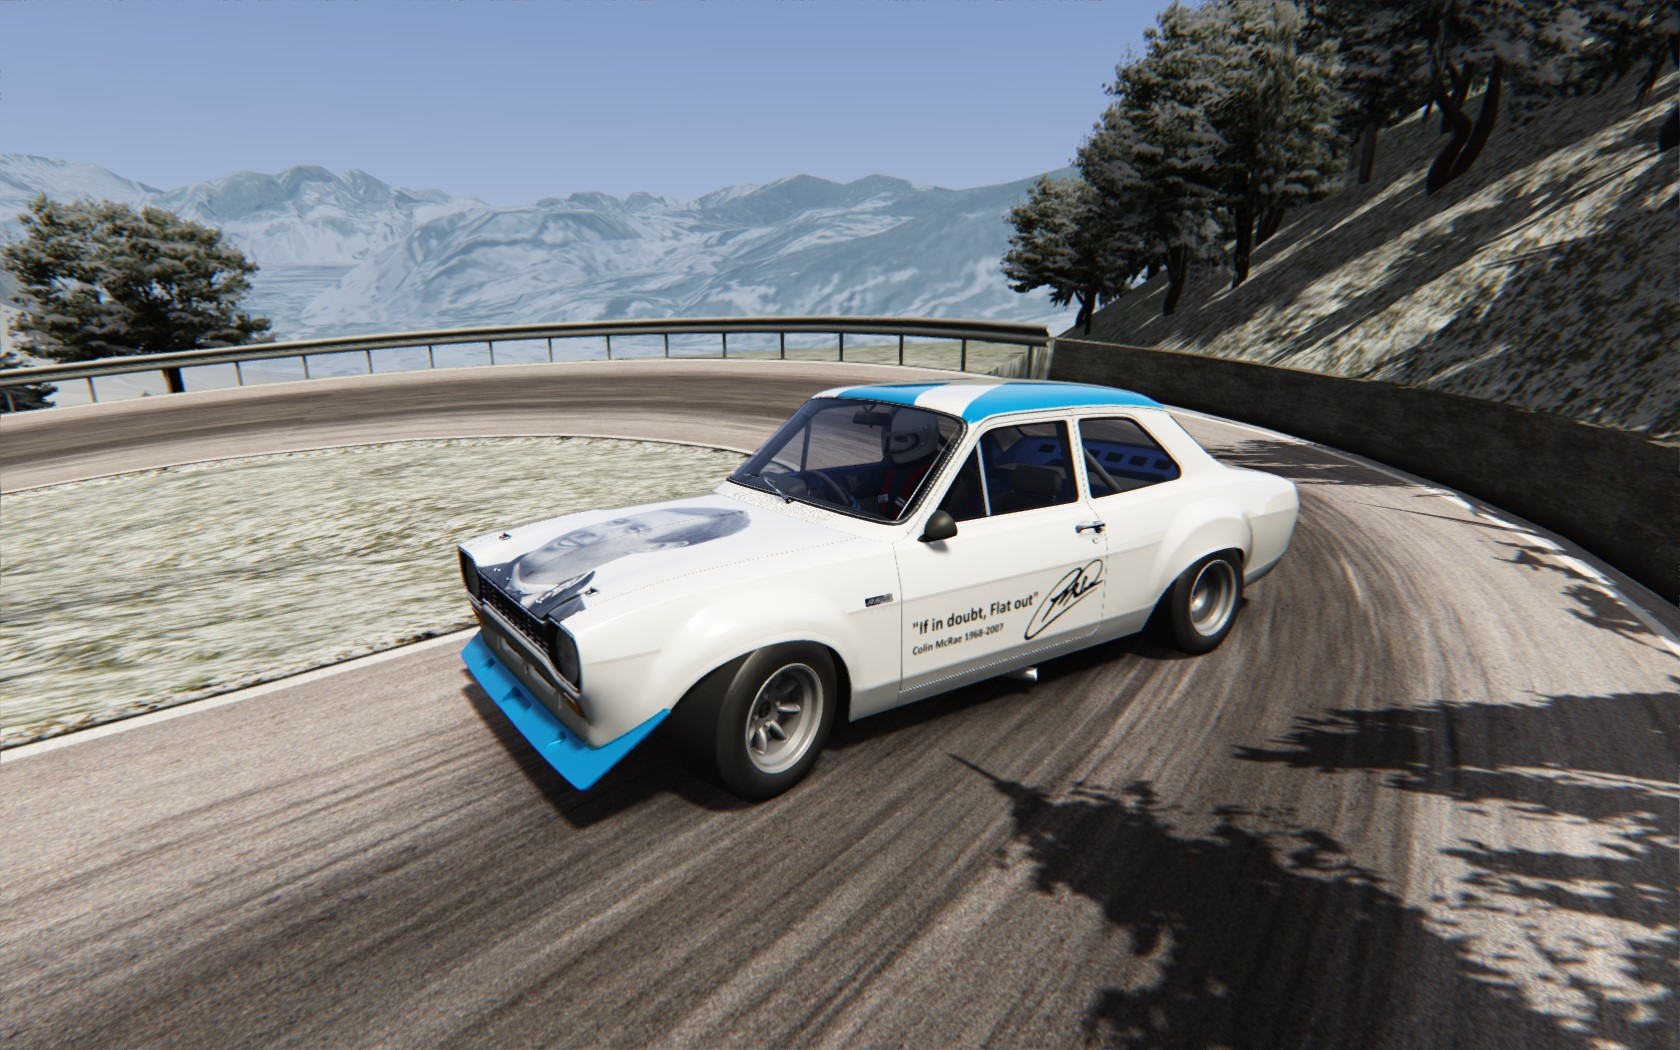 Screenshot_ks_ford_escort_mk1_trento-bondone-winter_25-12-116-11-14-27.jpg